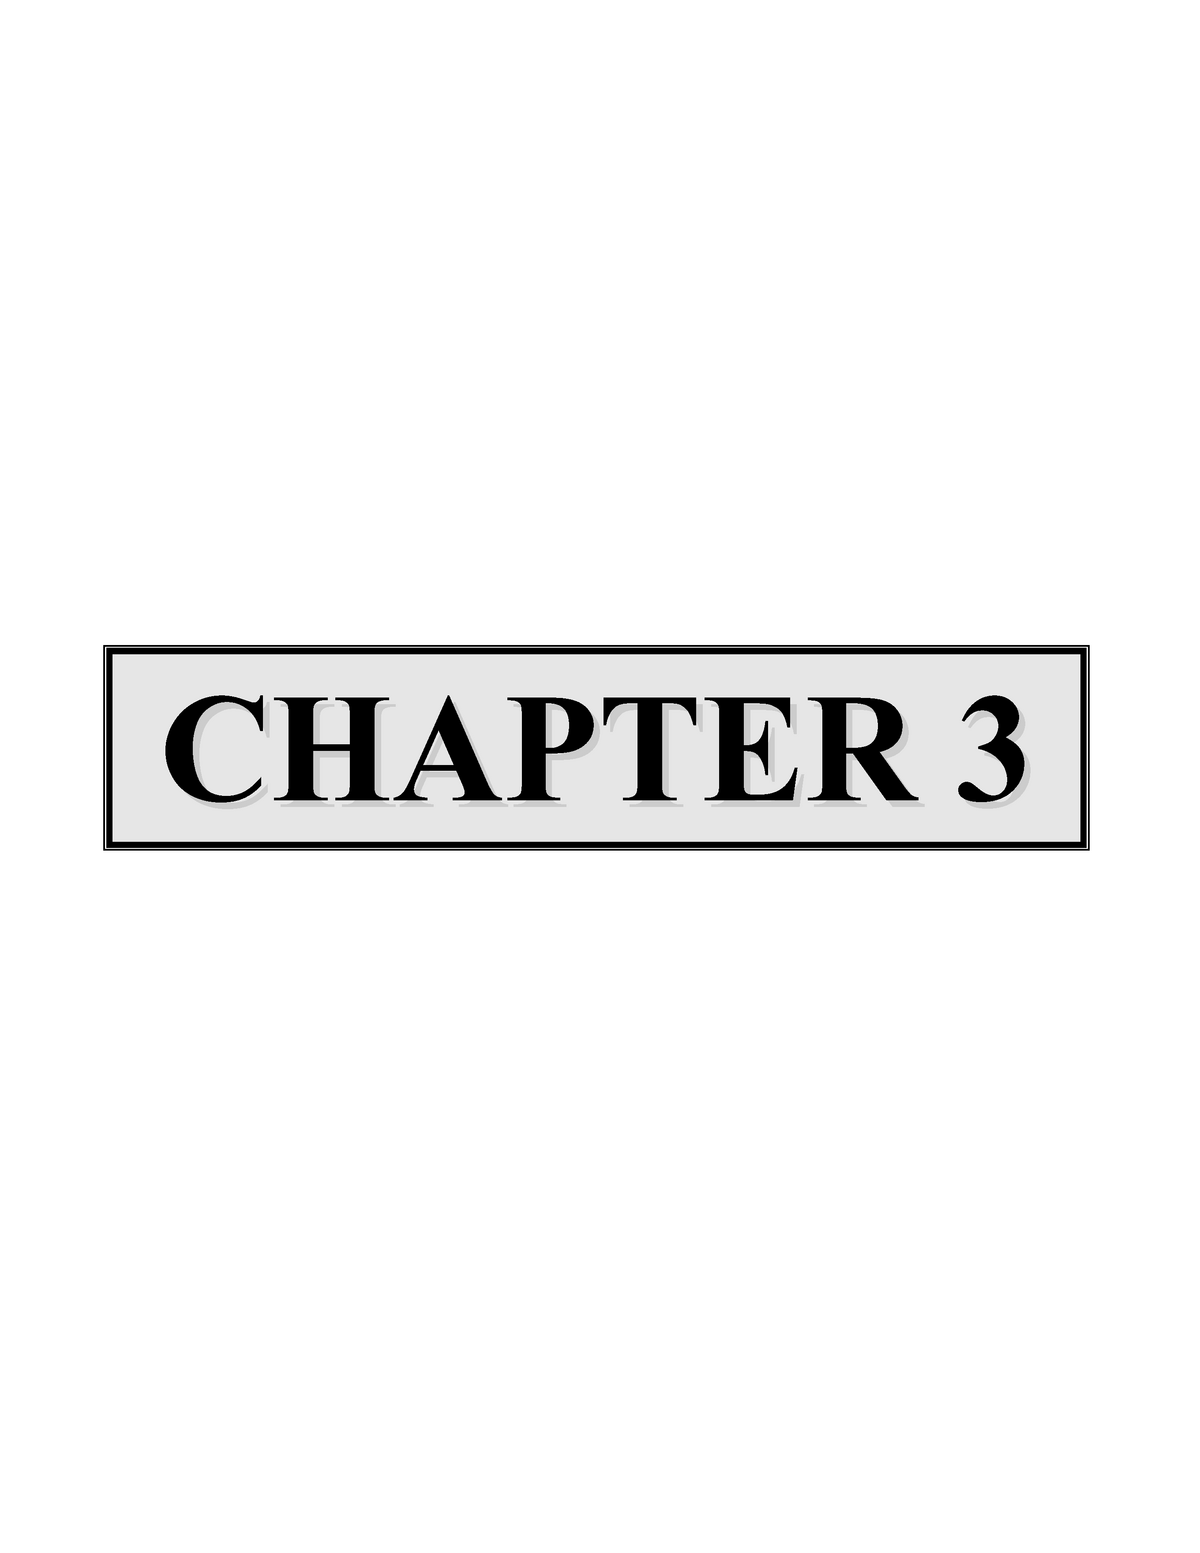 Mom Chap 3 Solution Mechanics Of Materials 7th Edition Solition Manual Chapter 3 Studocu